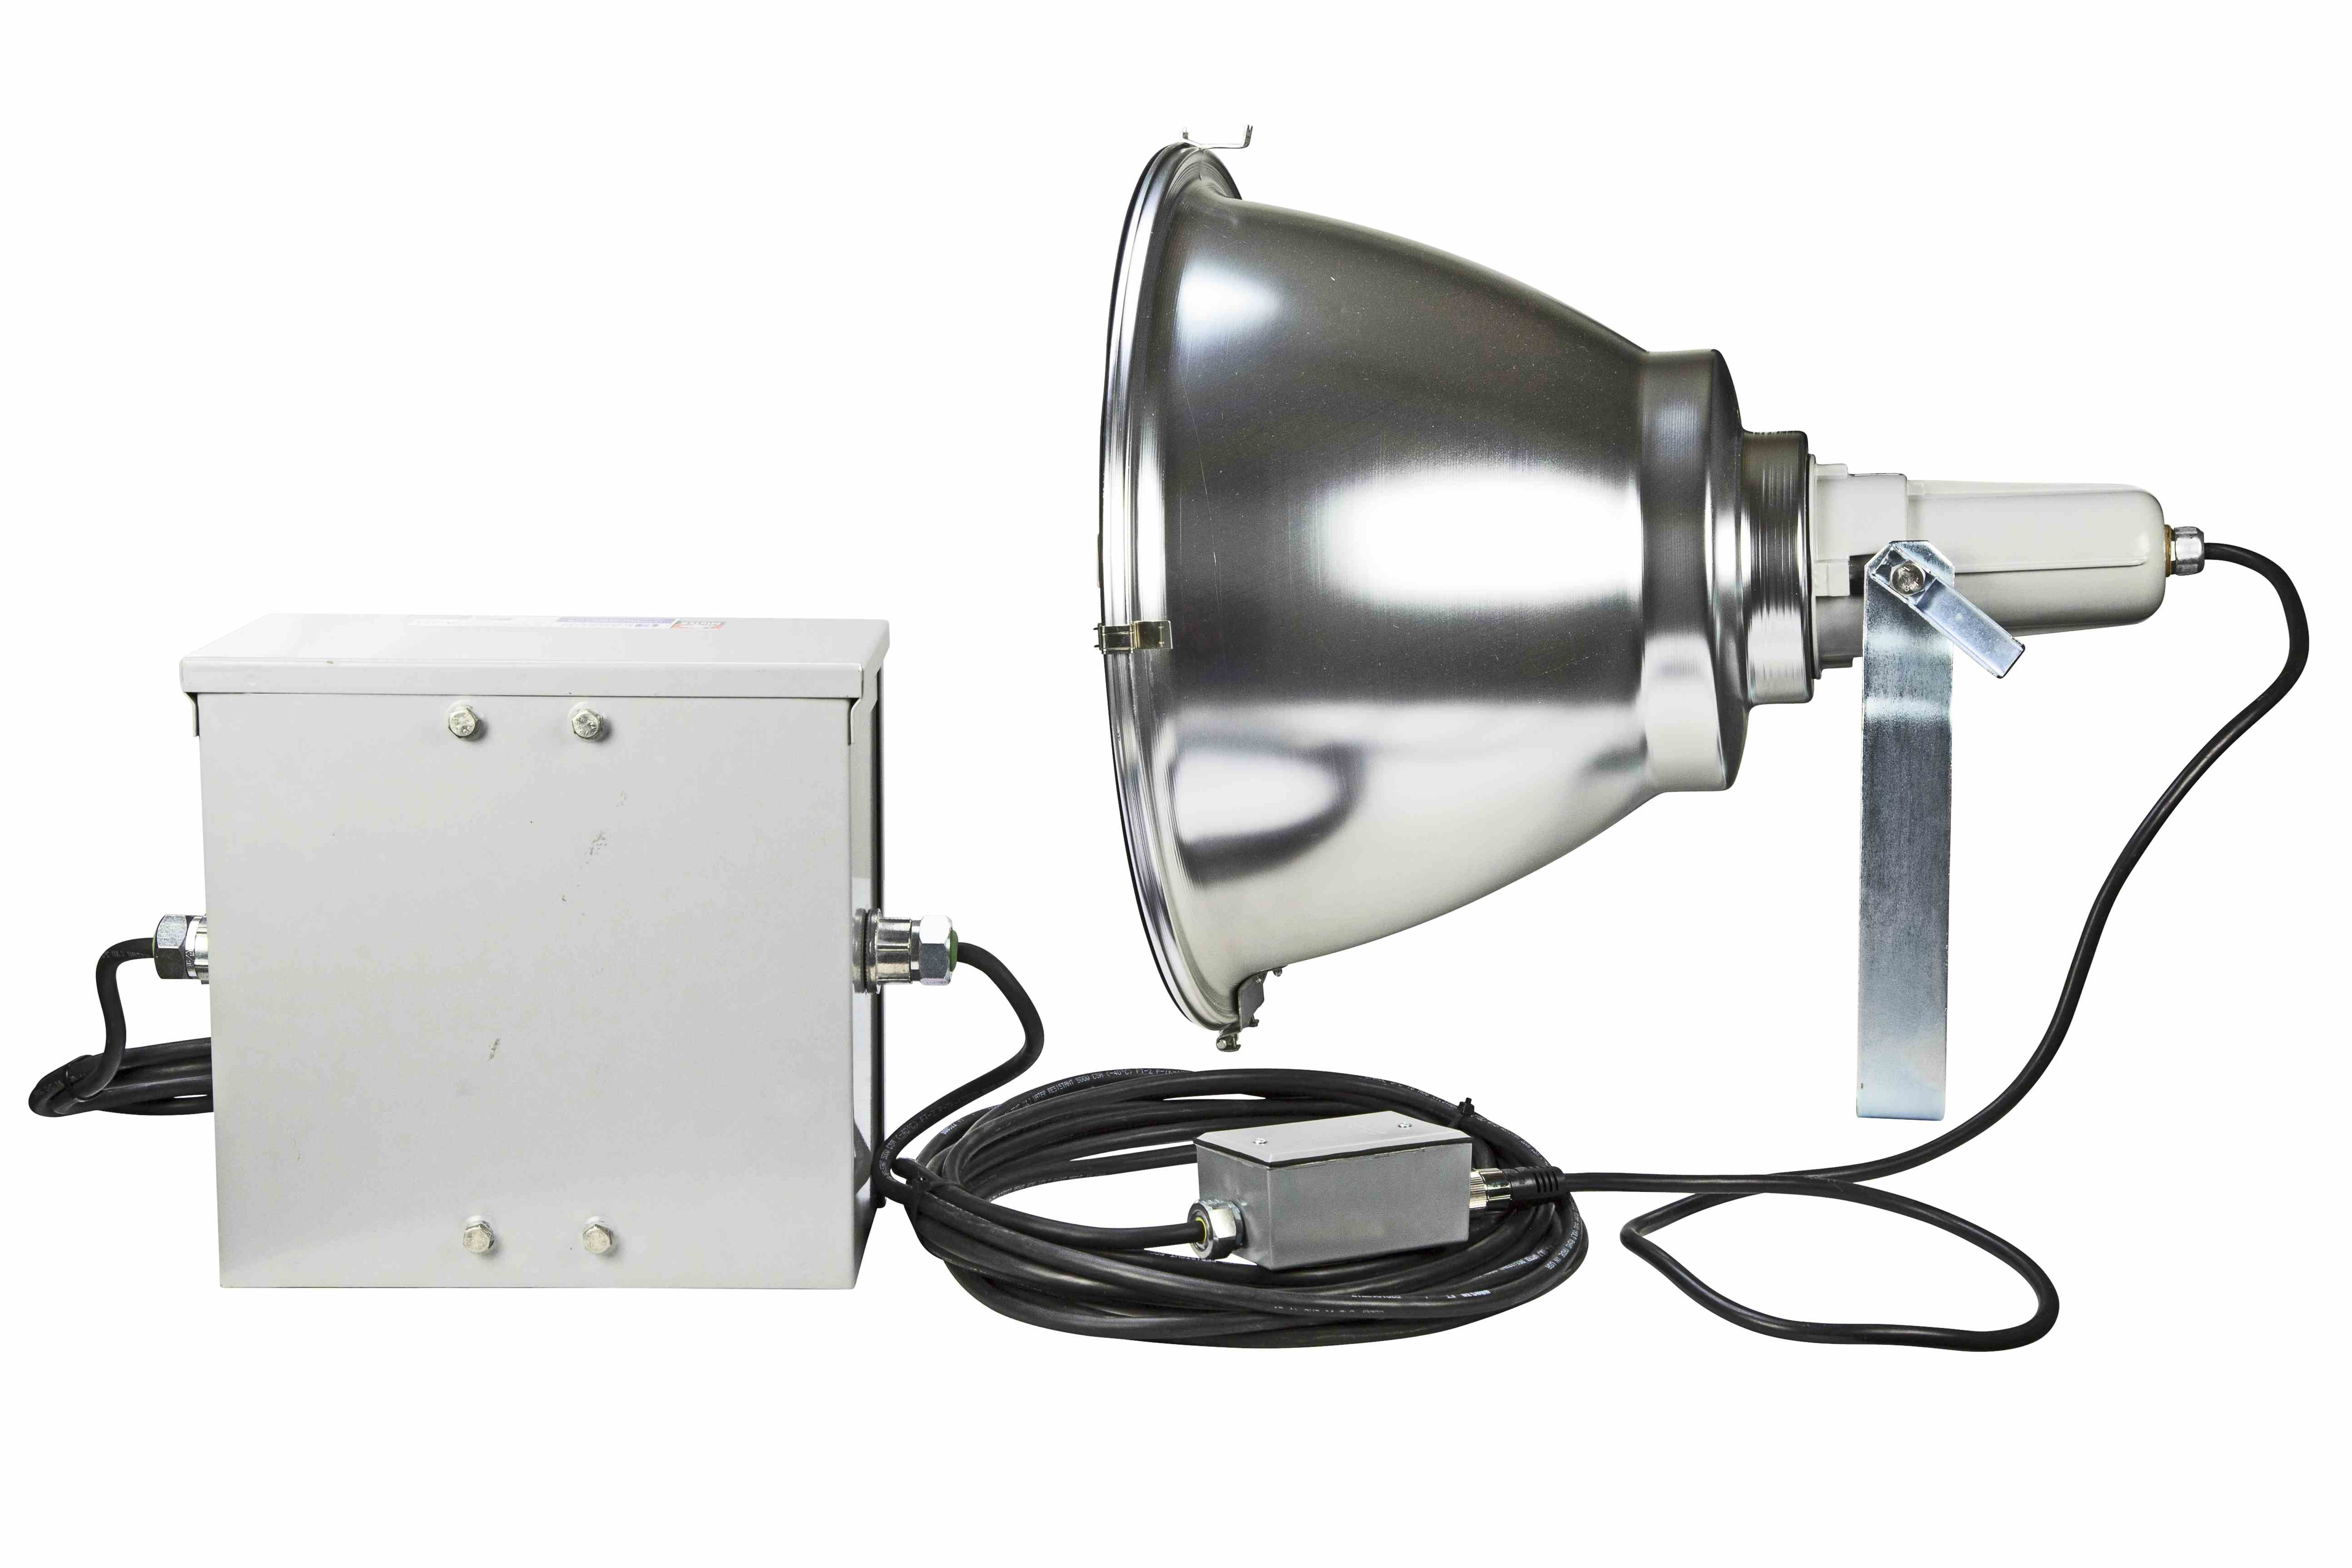 Metal halide light w remote ballast 1000 watt hid flood beam hi res image 4 metal halide light w remote ballast arubaitofo Choice Image